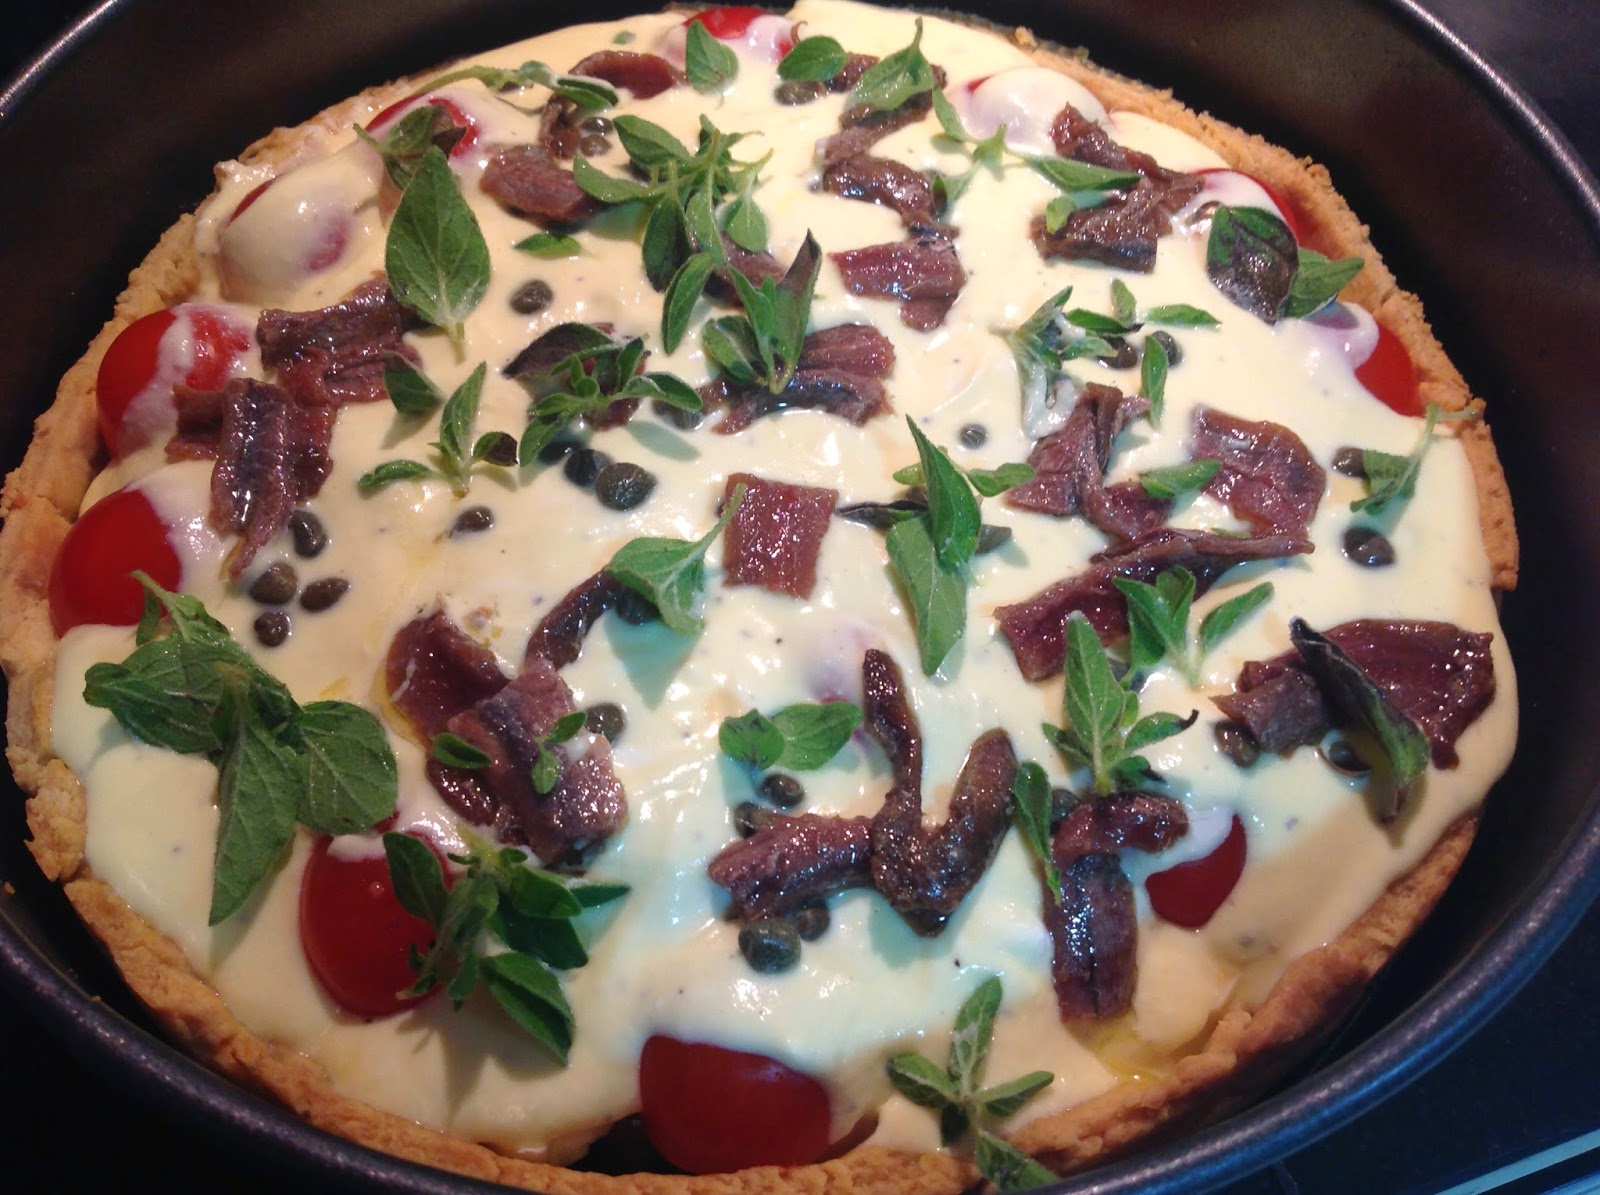 Mediterranean tart (eggplant, cherry tomatoes and ricotta) before baking